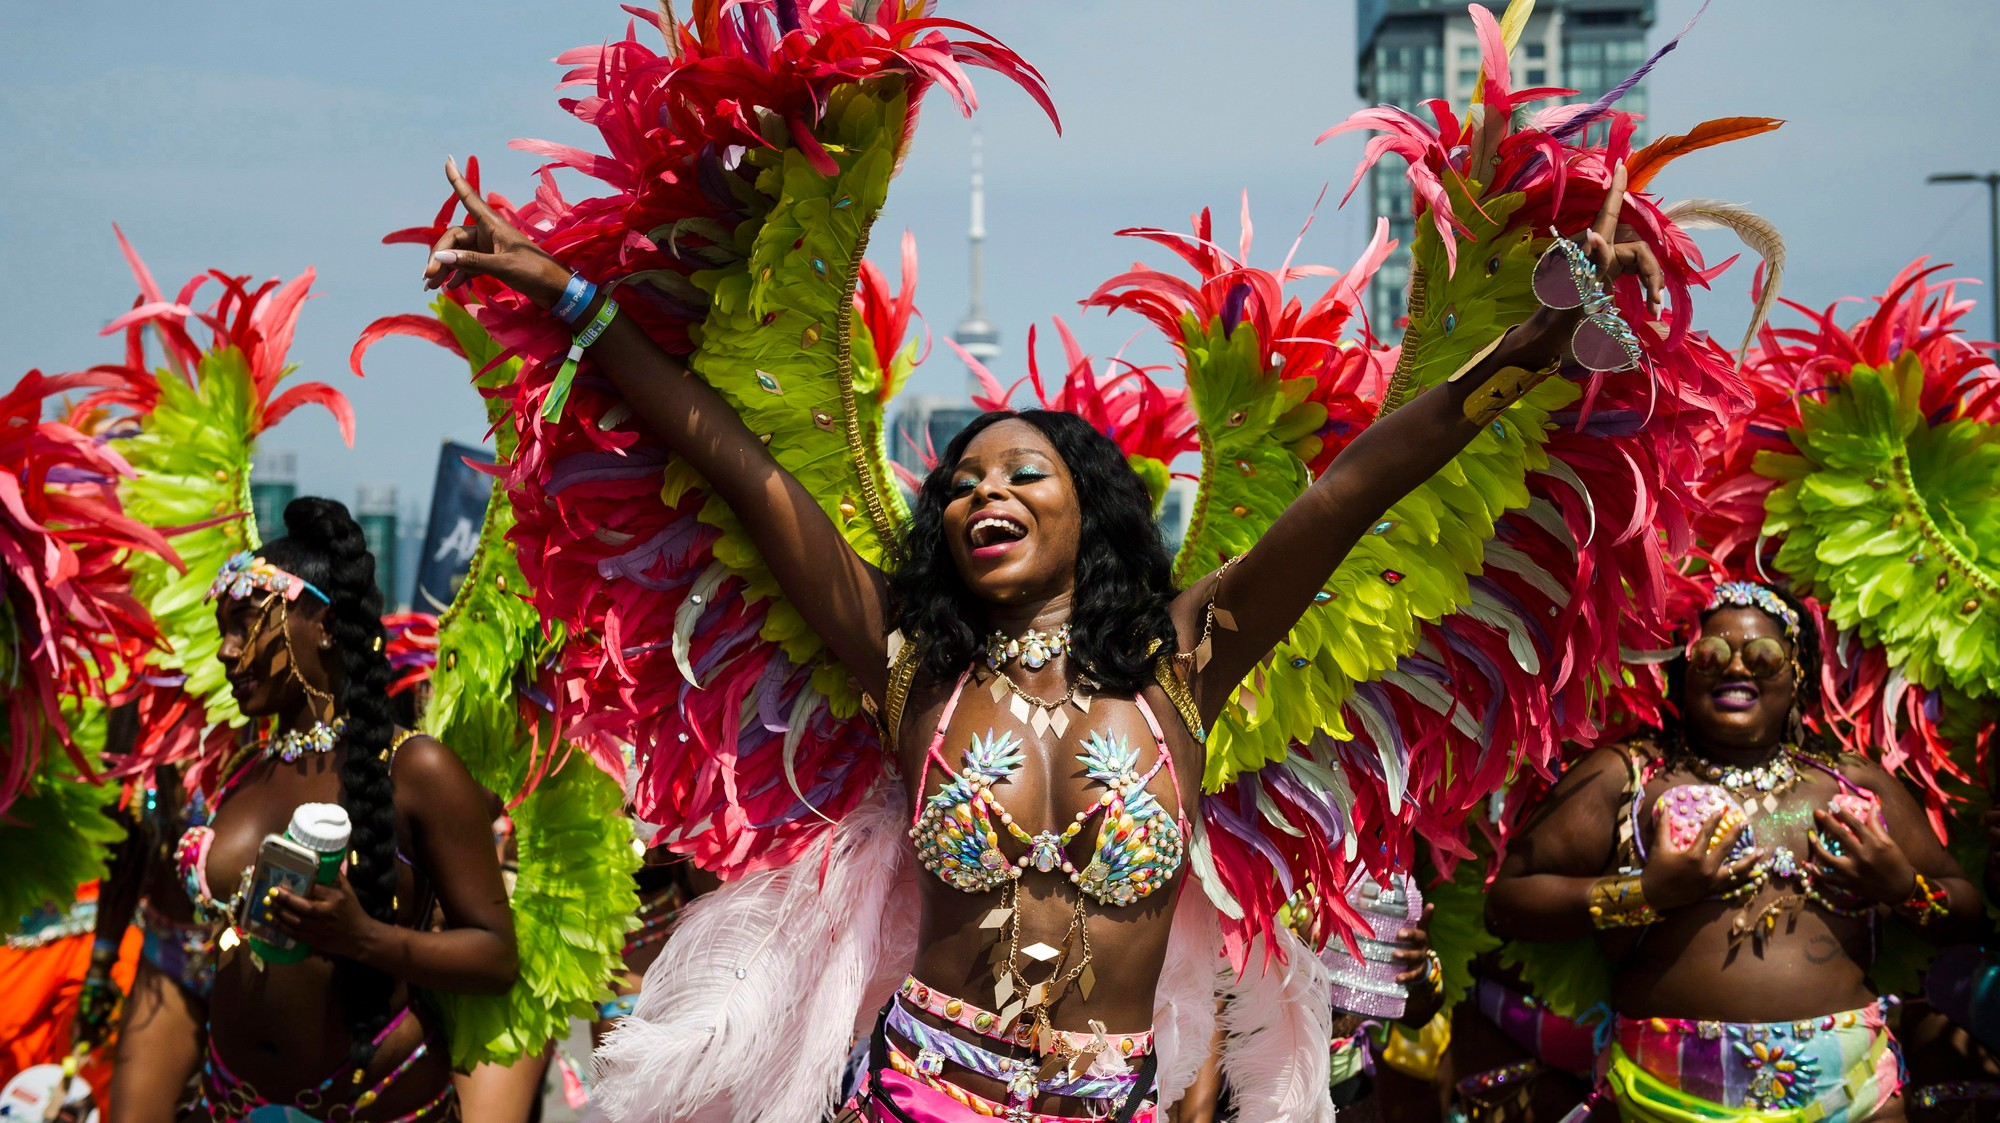 Instagram Apologizes For Blocking Caribbean Carnival Content